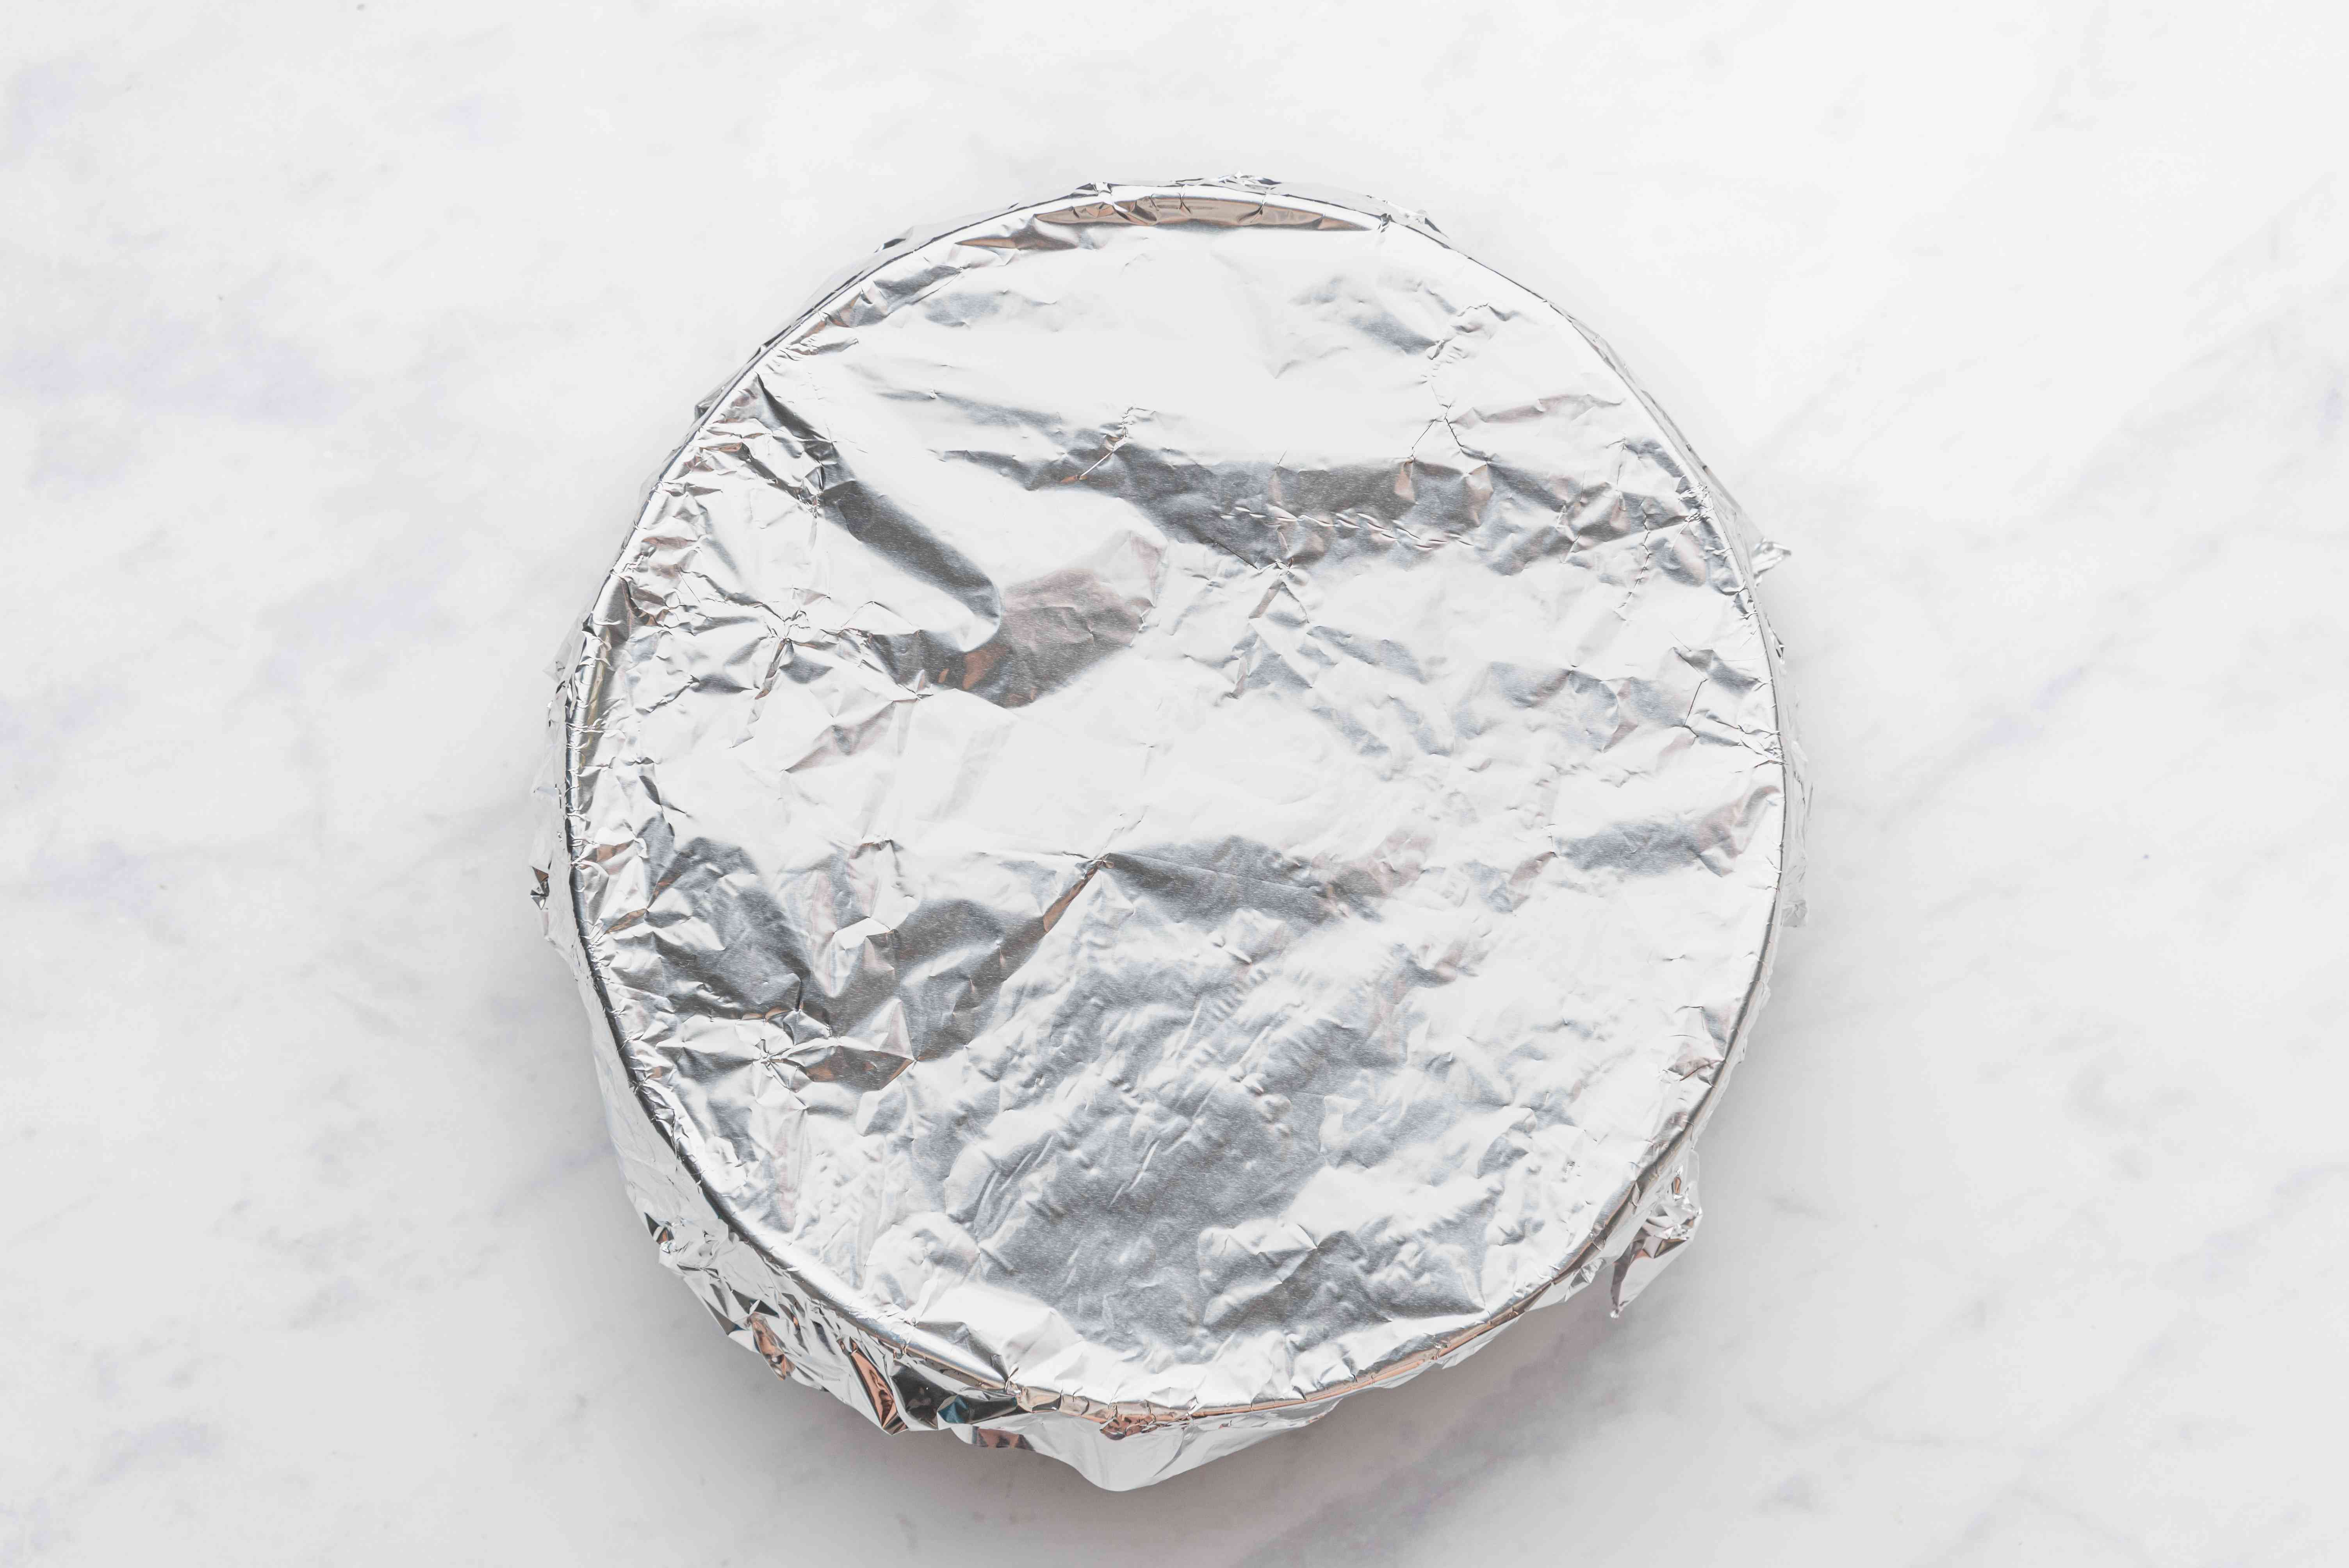 Salted vegetables thoroughly combined in a bowl, covered with aluminum foil